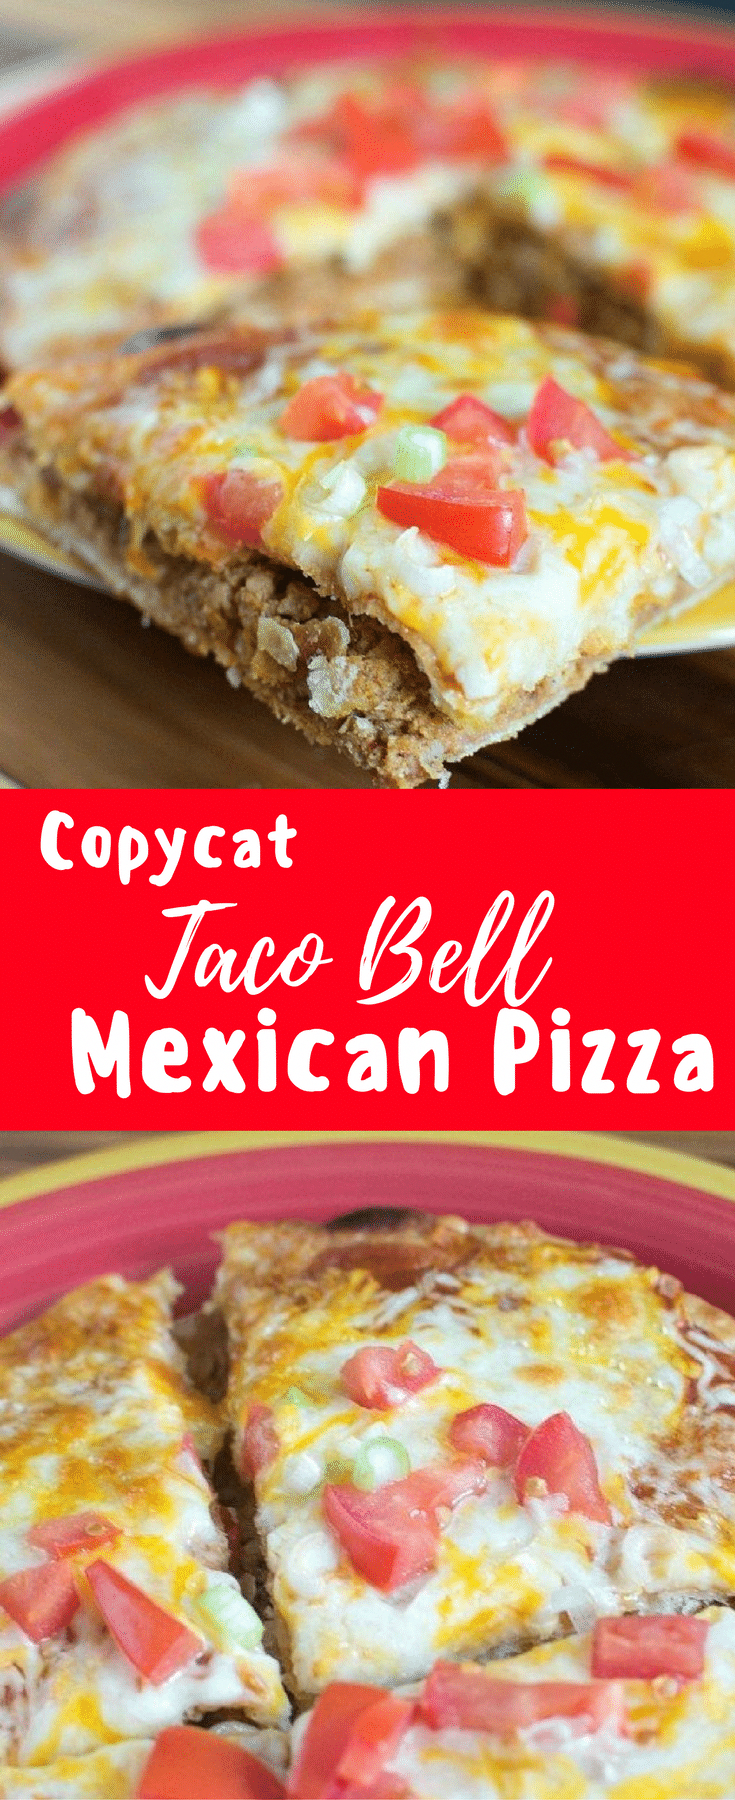 Photo of Copy cat Taco Bell Mexican Pizza Recipe / Mexican Pizza / Co…